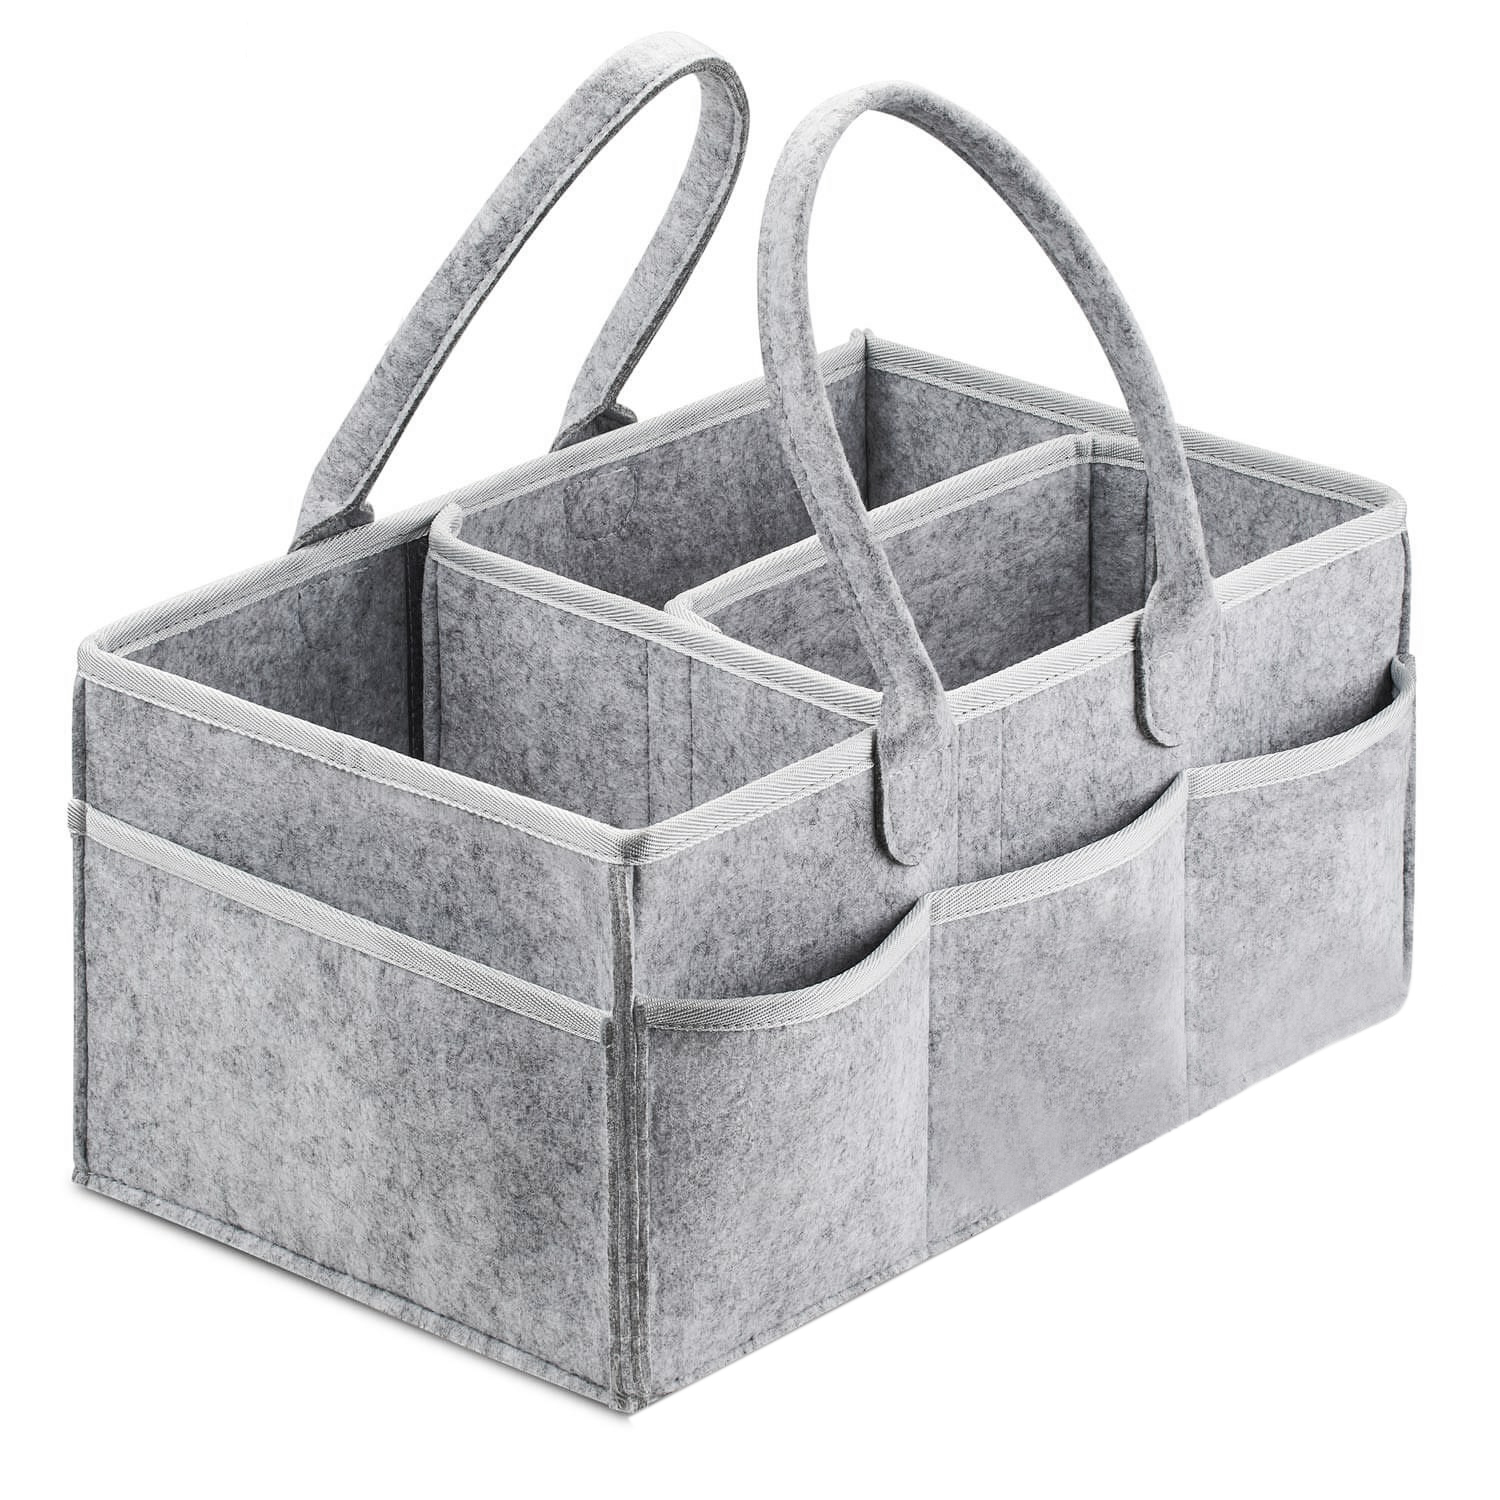 Baby Diaper Caddy Organizer Portable Holder Bag For Changing Table And Car, Nursery Essentials Storage Bins